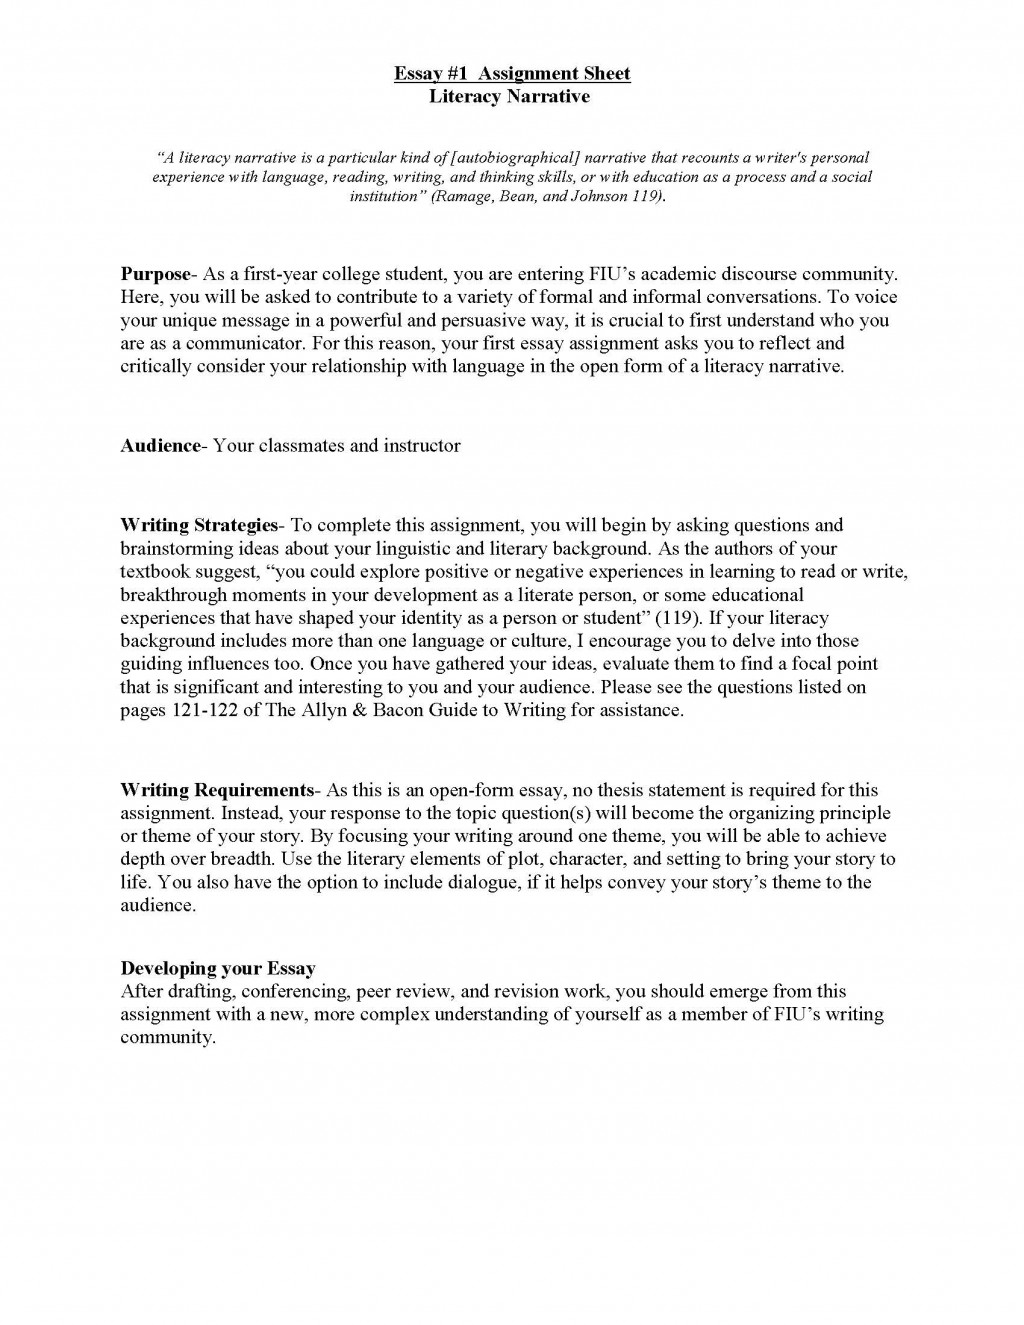 020 Essay Example Literacy Narrative Unit Assignment Spring 2012 Page 1 Fascinating Define Narrative/descriptive Definition Of Writing The Term Large